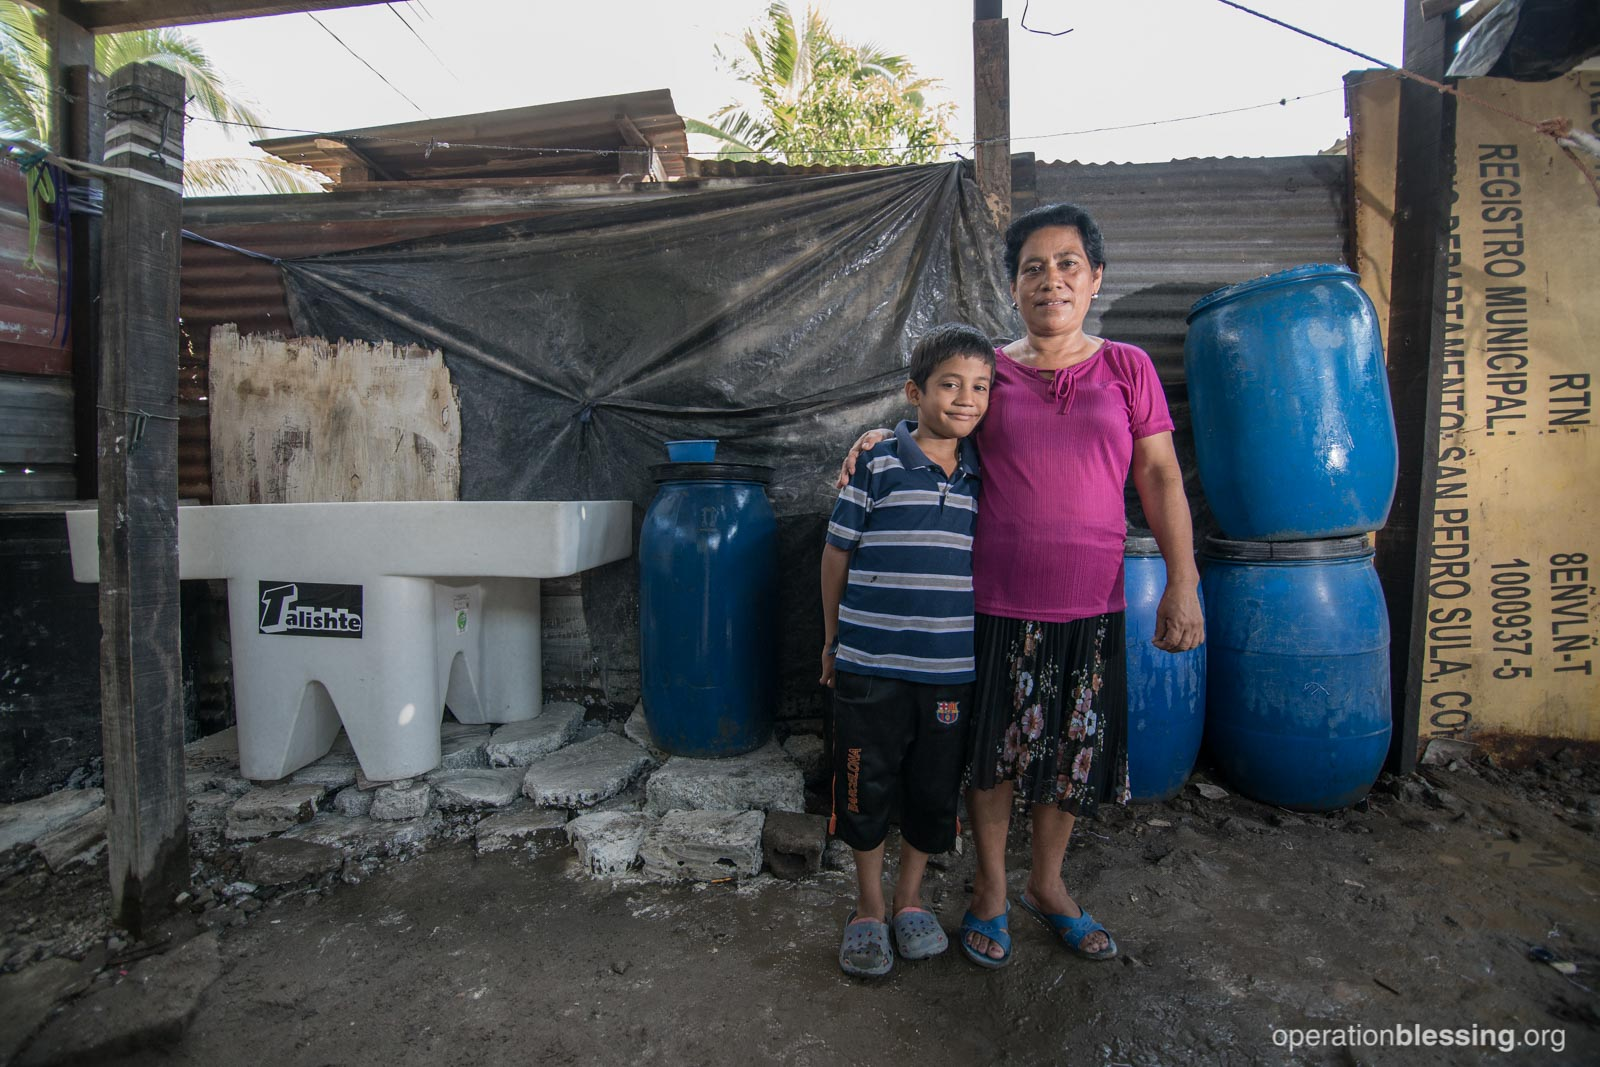 Mercedes and her son pose in front of their new pila and water containers.